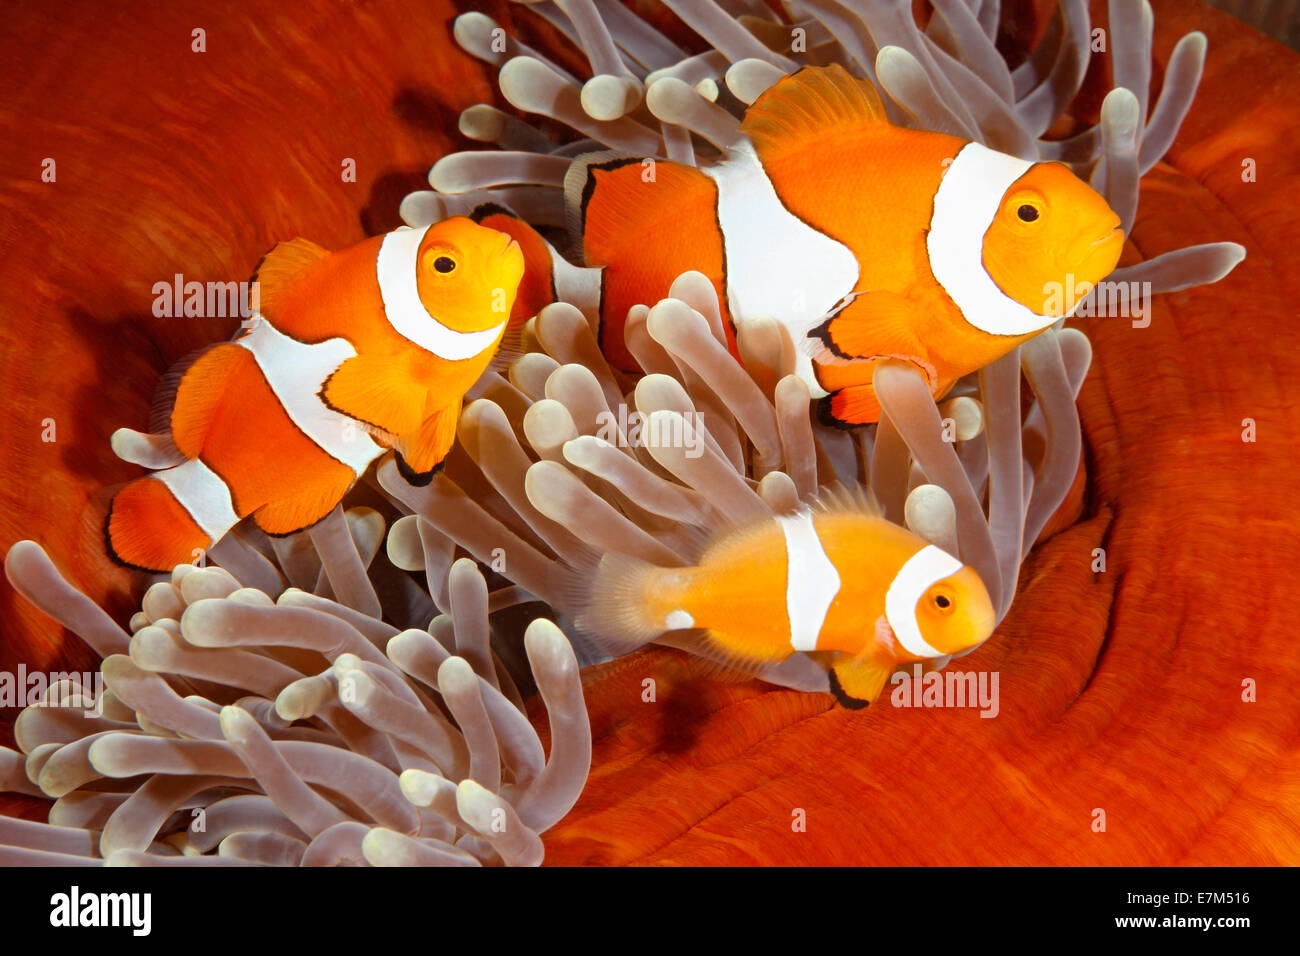 a-family-of-clown-anemonefish-amphiprion-percula-E7M516.jpg